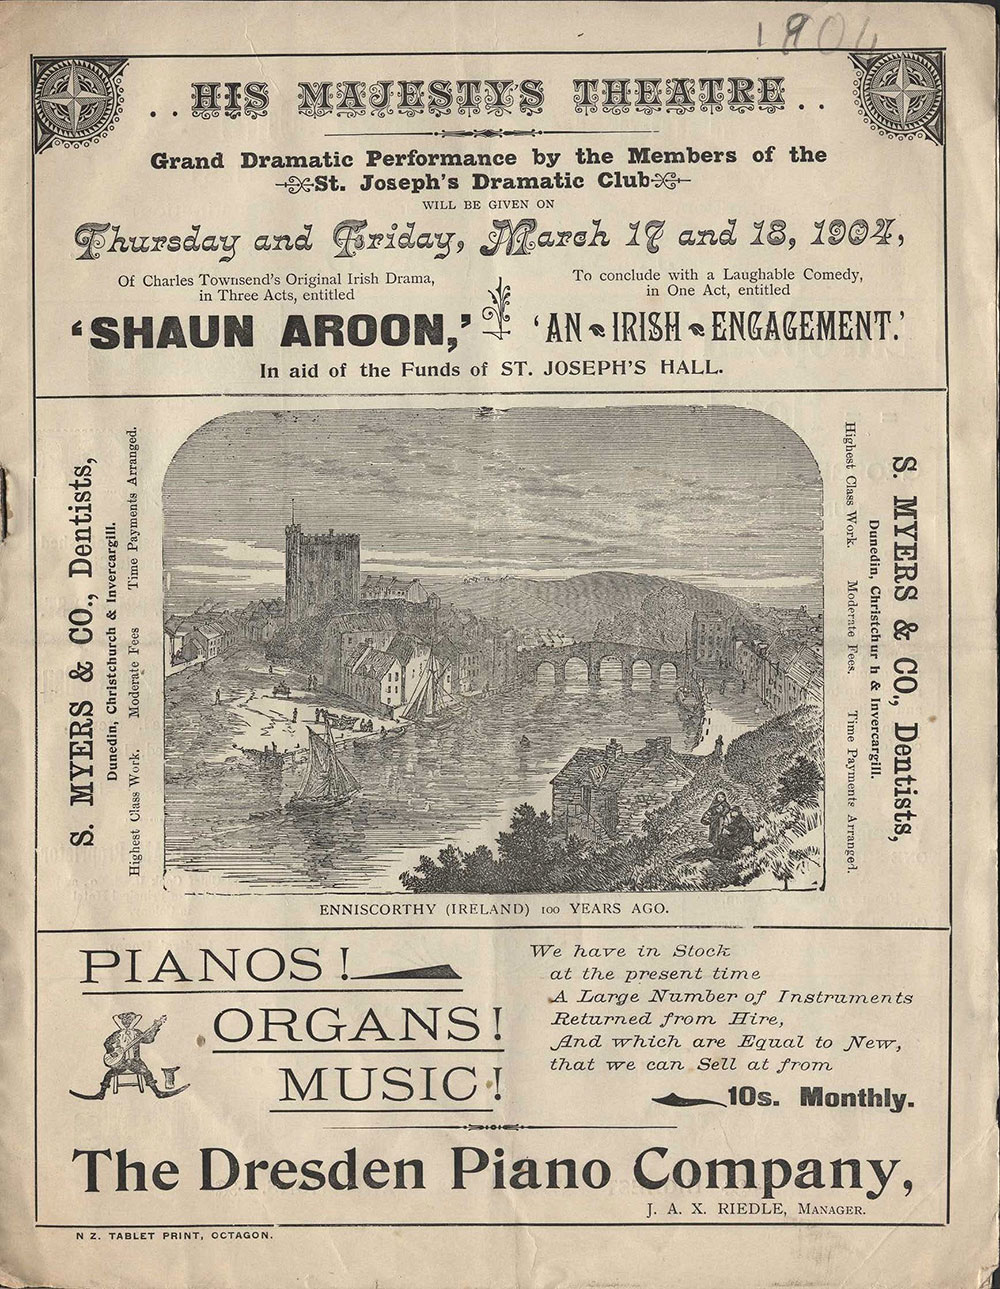 <em>Shaun Aroon</em>. Charles Townsend. <em>An Irish engagement</em>. (St Joseph's Dramatic Club). His Majesty's Theatre, Dunedin, Mar. 17-18, 1904.